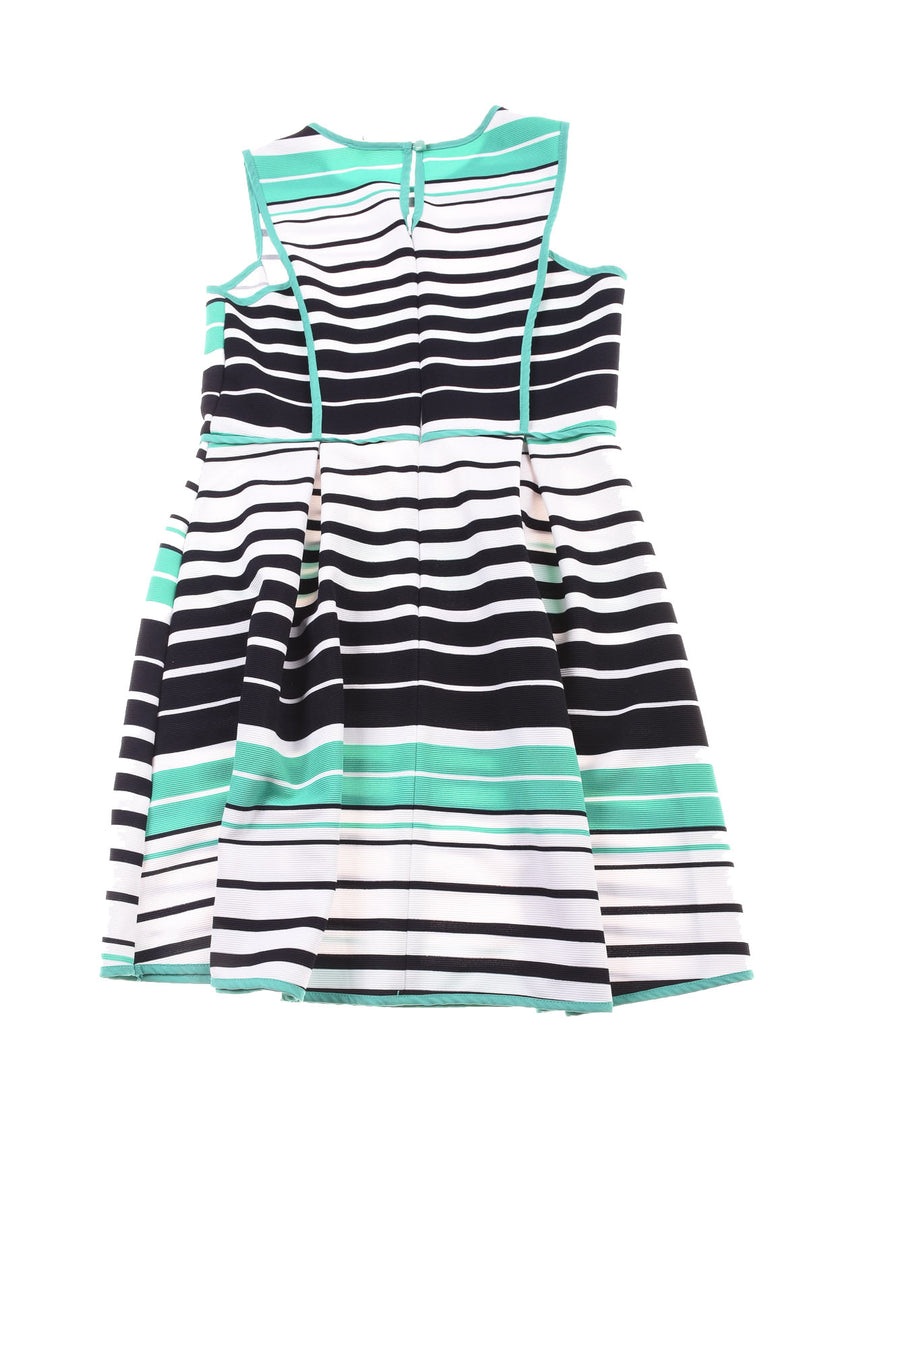 USED Monteau Girl's Dress Large Black, Green, & White